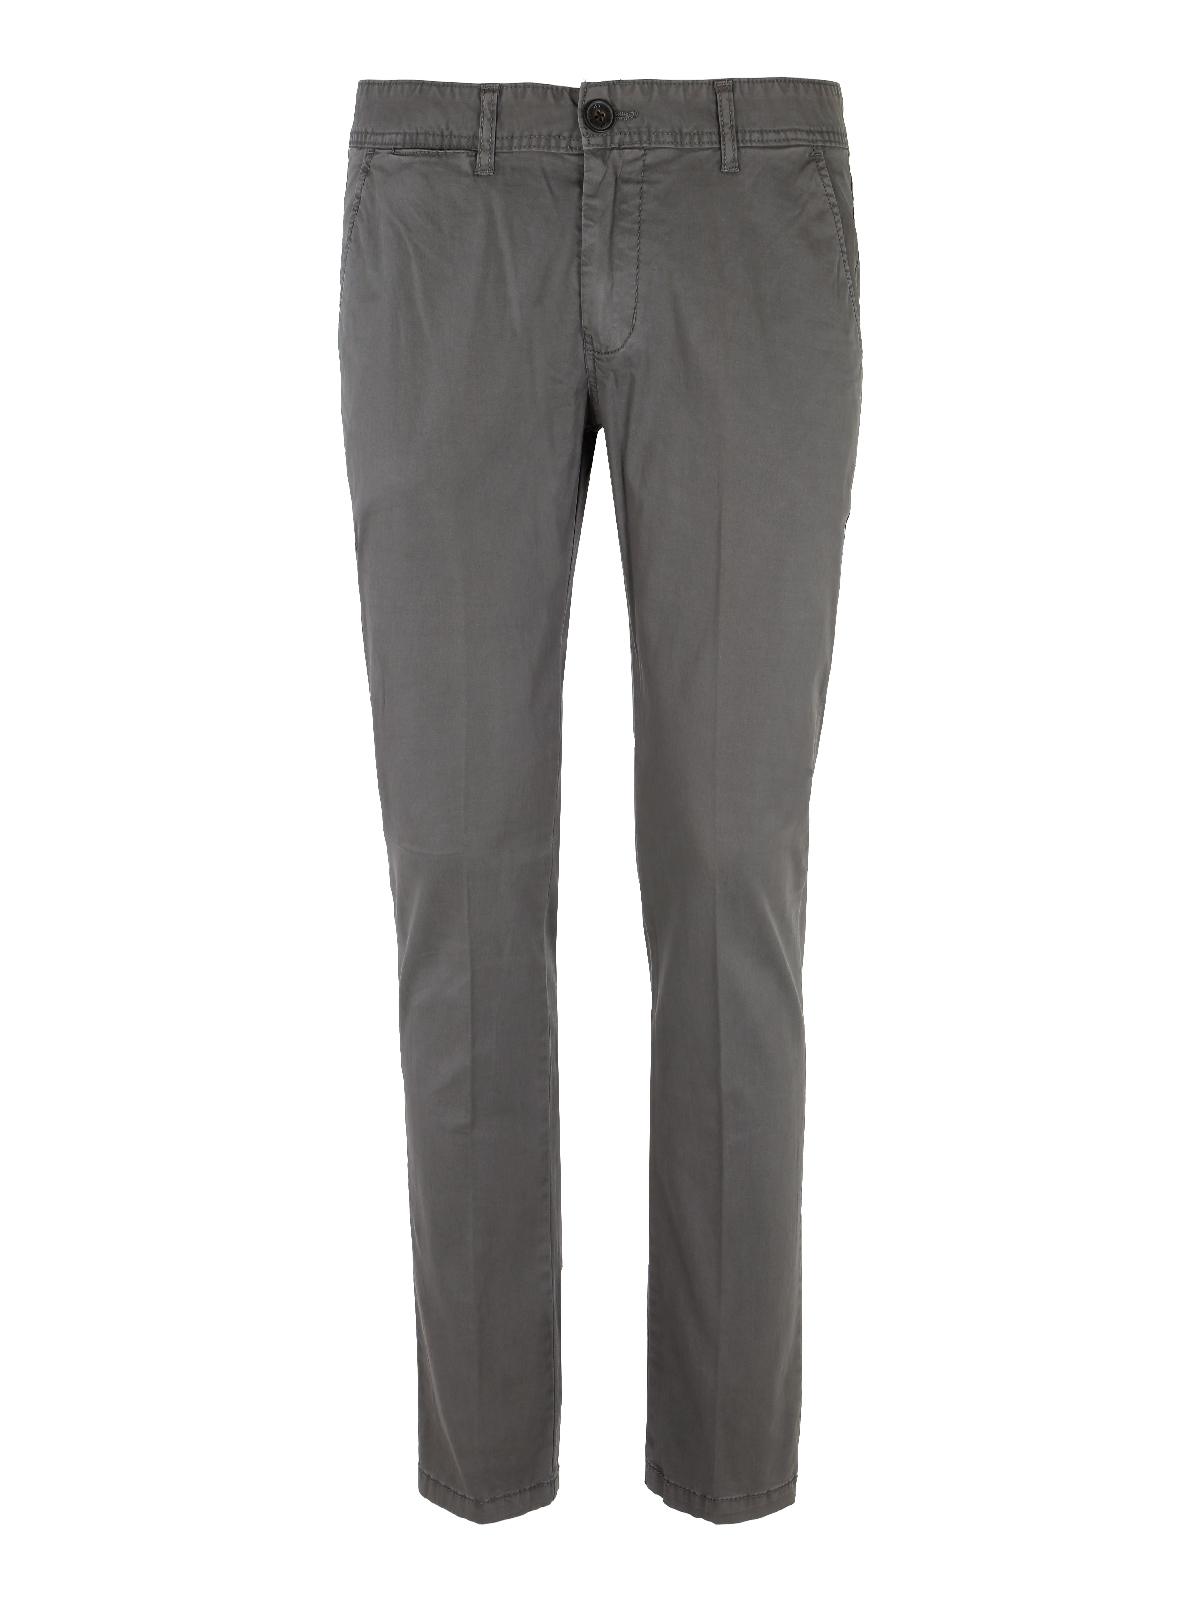 Classic Men's Trousers Plus Size Over